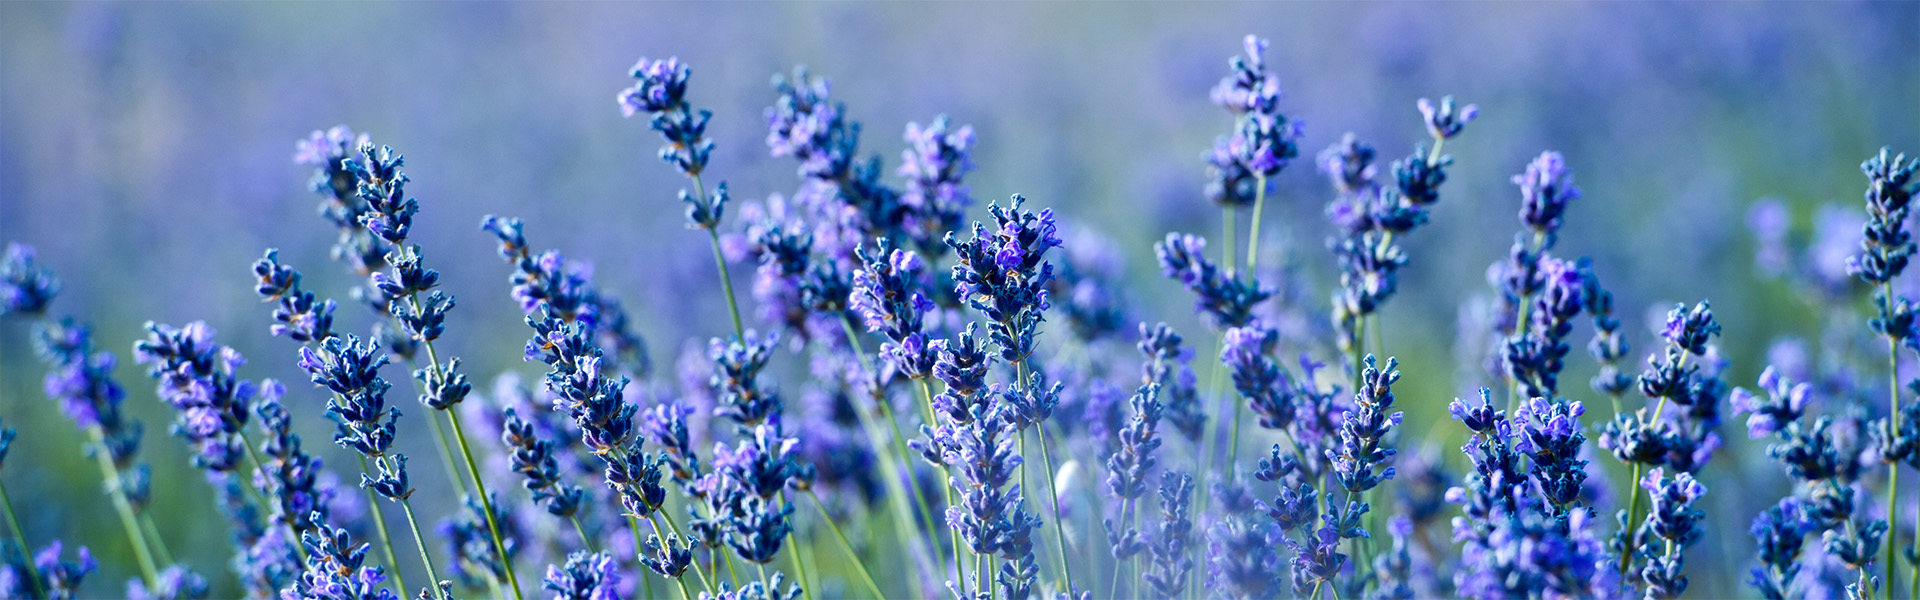 """<p data-aos=fade-up style=""""text-align:center""""><strong>Lavender</strong></p>  <p data-aos=fade-up style=""""text-align:center"""">Gentle summer scent in your garden</p>"""